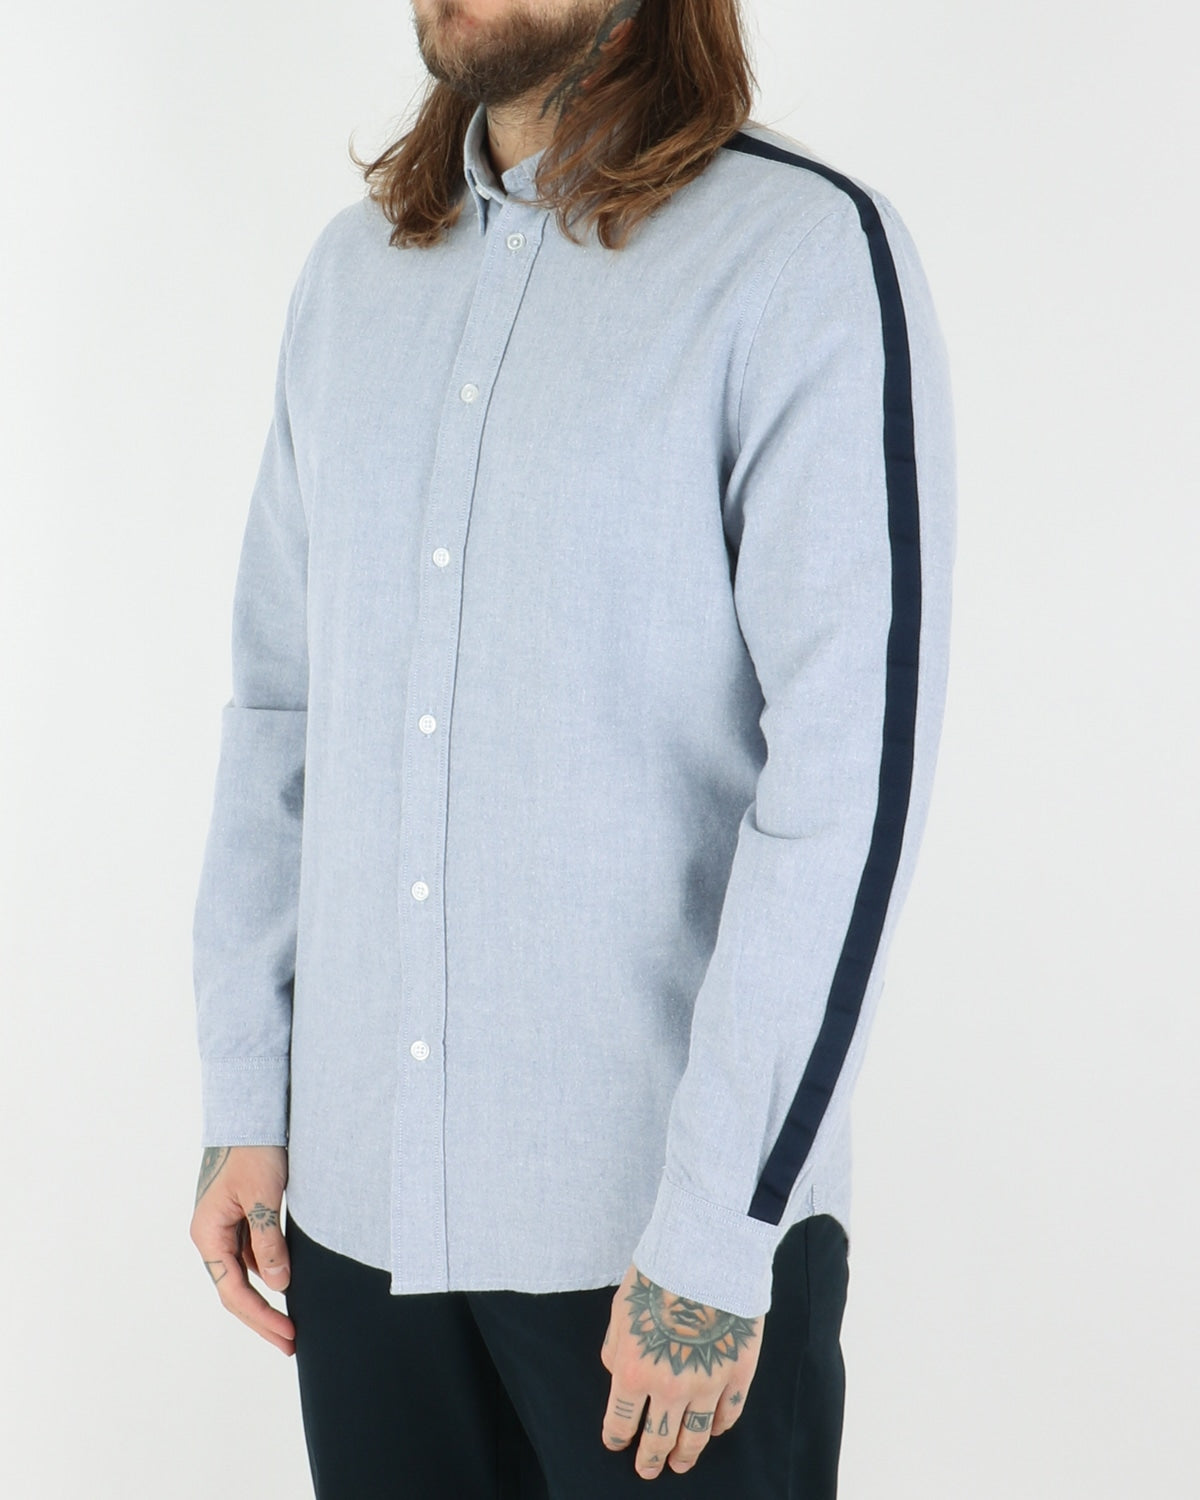 we are copenhagen_novak ls shirt_light blue_view_1_3